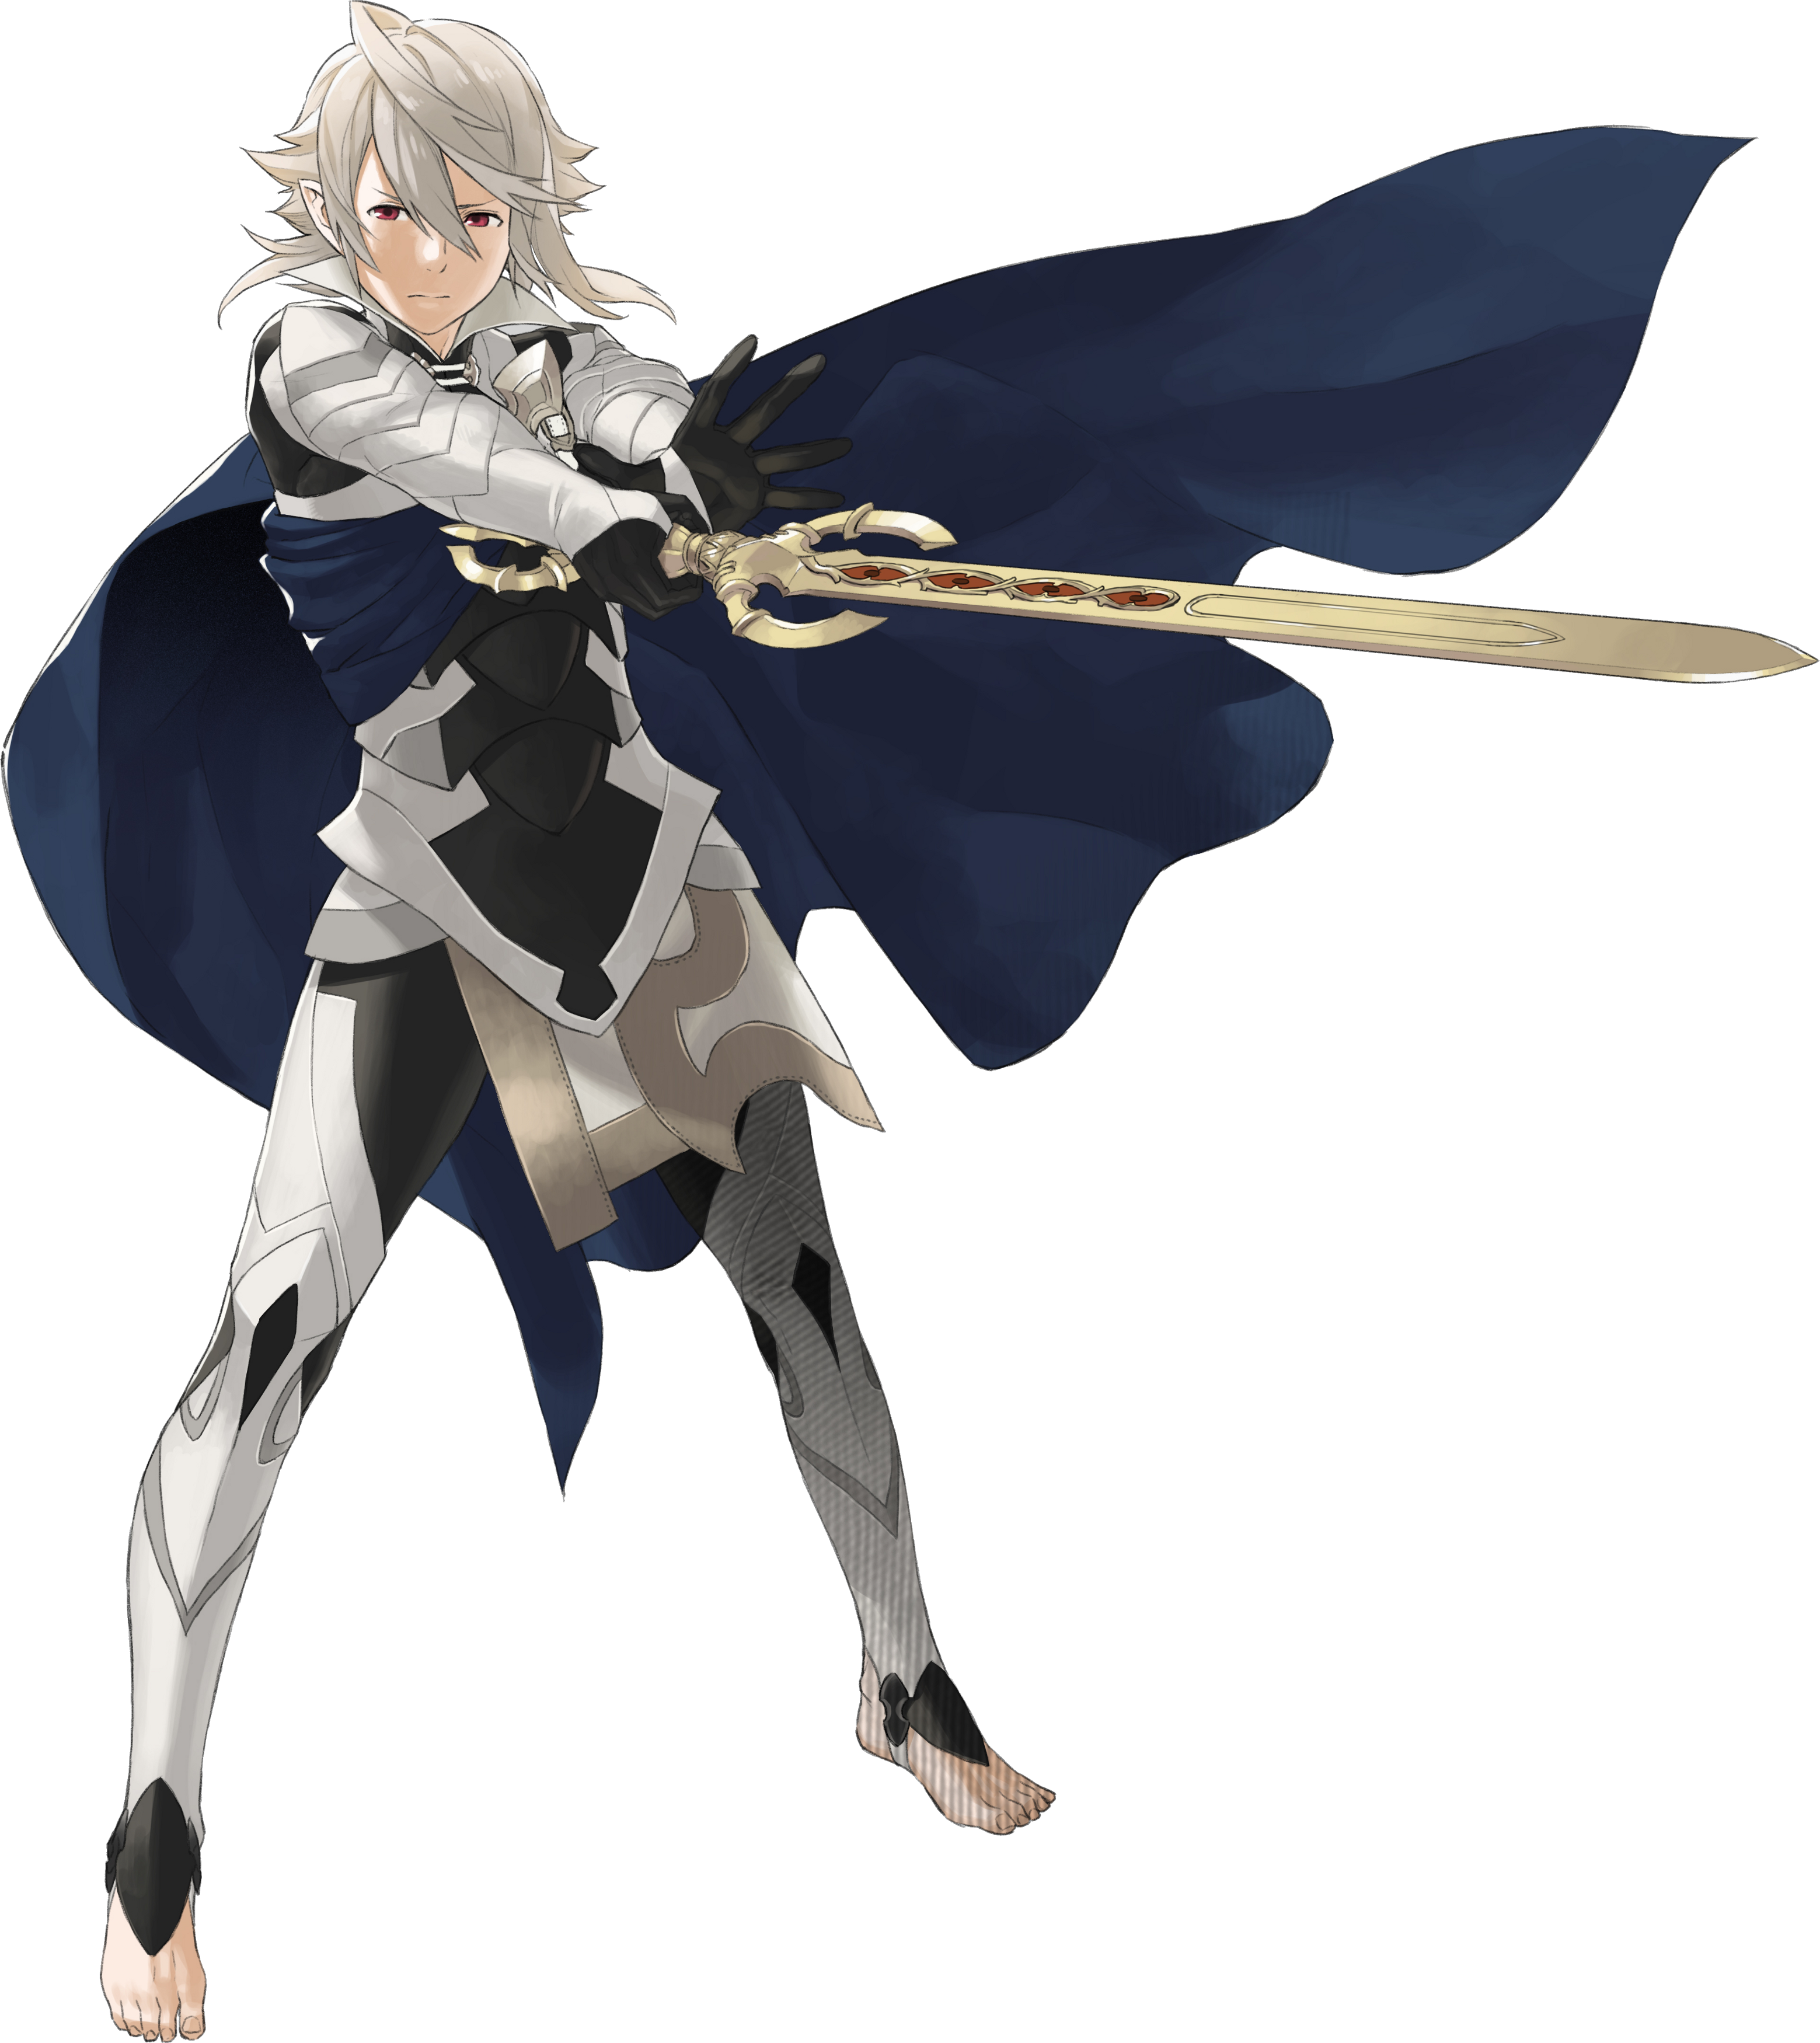 Avatar 2 Release Date Confirmed: A New Fate: The New FE14 Protagonist Kamui For DLC